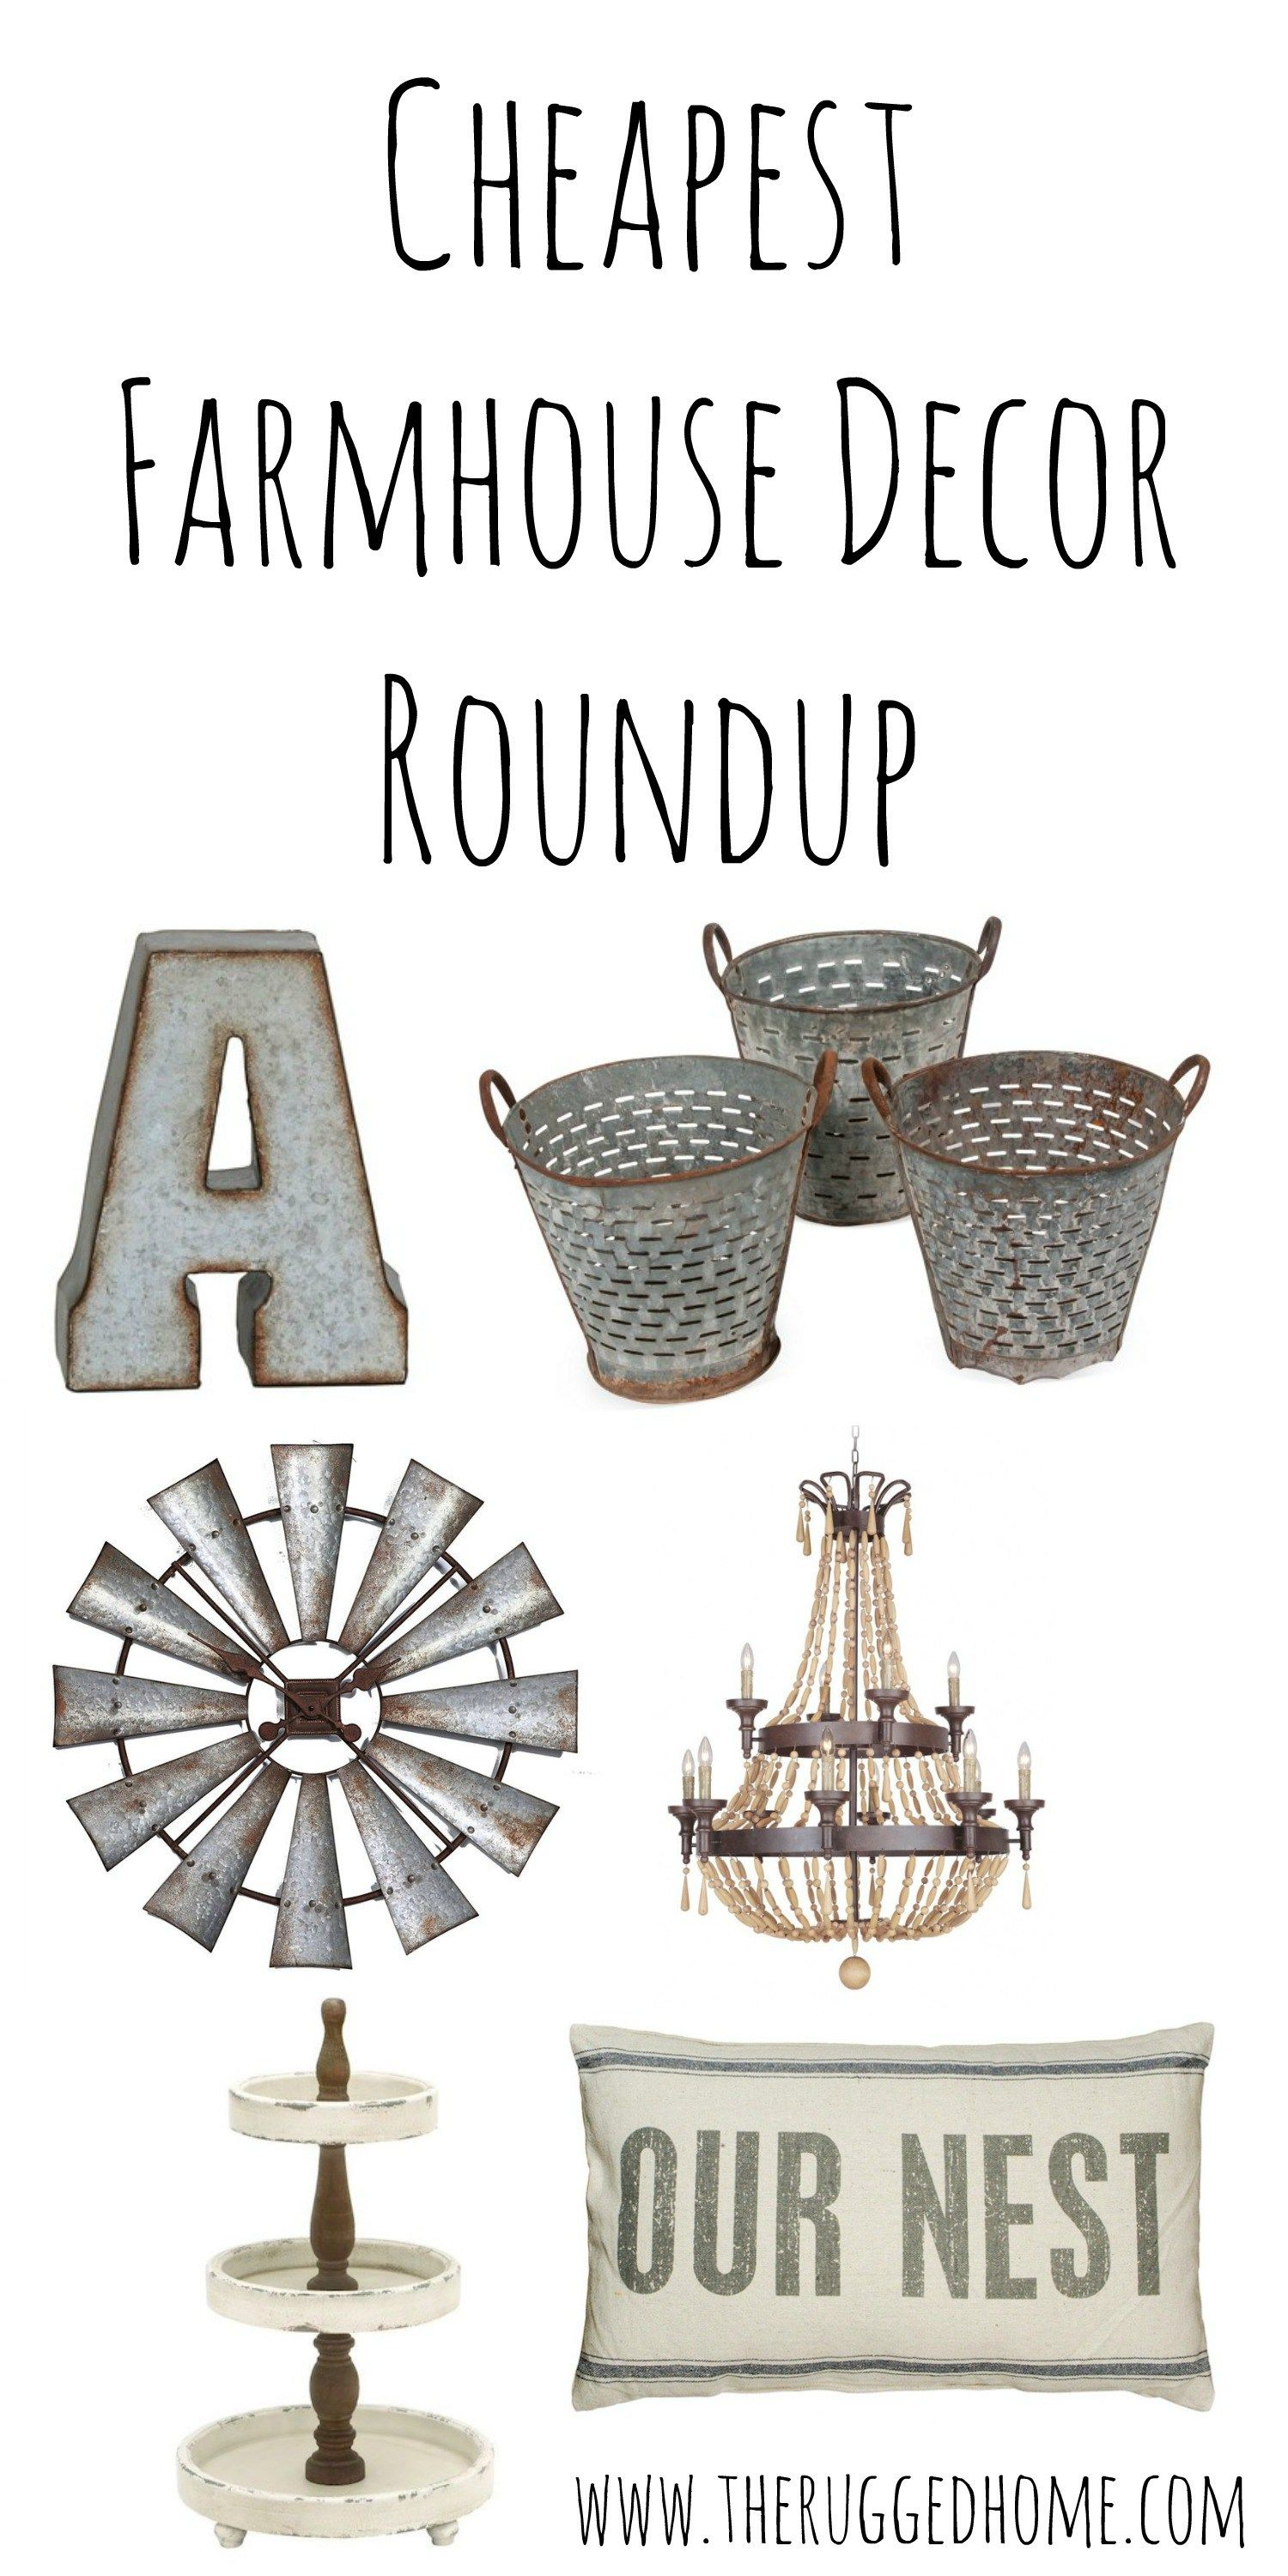 50 Beautiful Rustic Home Decor Project Ideas You Can